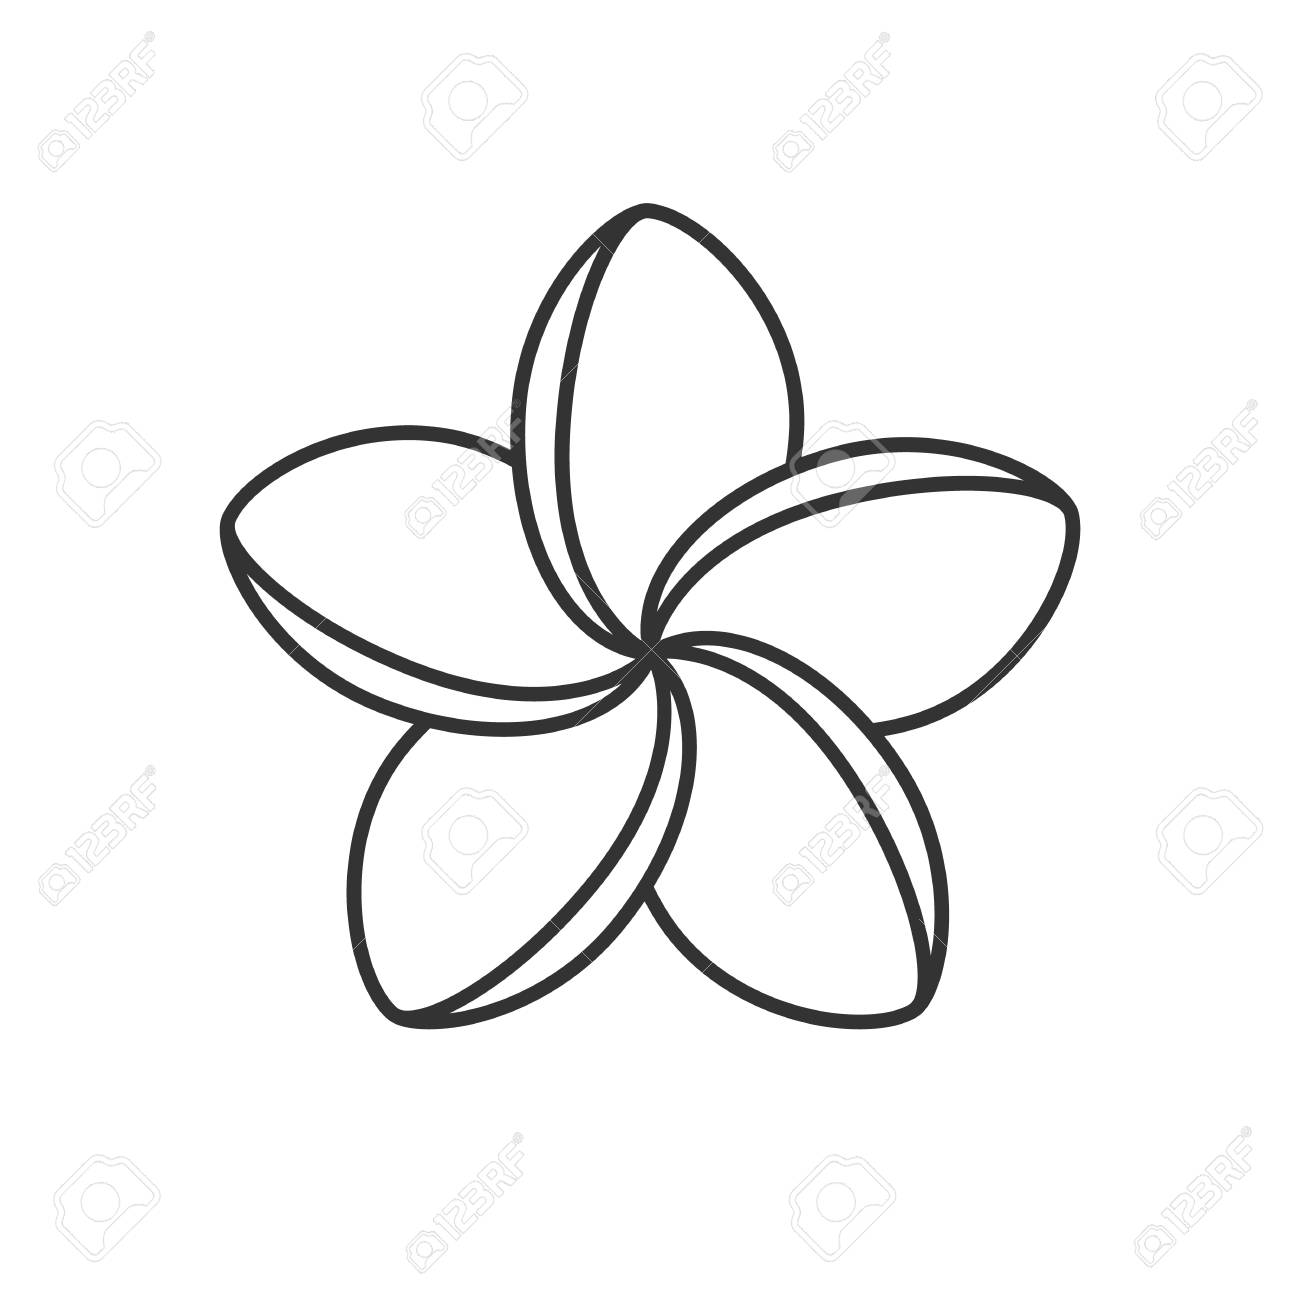 spa salon plumeria flower linear icon thin line illustration rh 123rf com plumeria clipart black and white plumeria clipart black and white